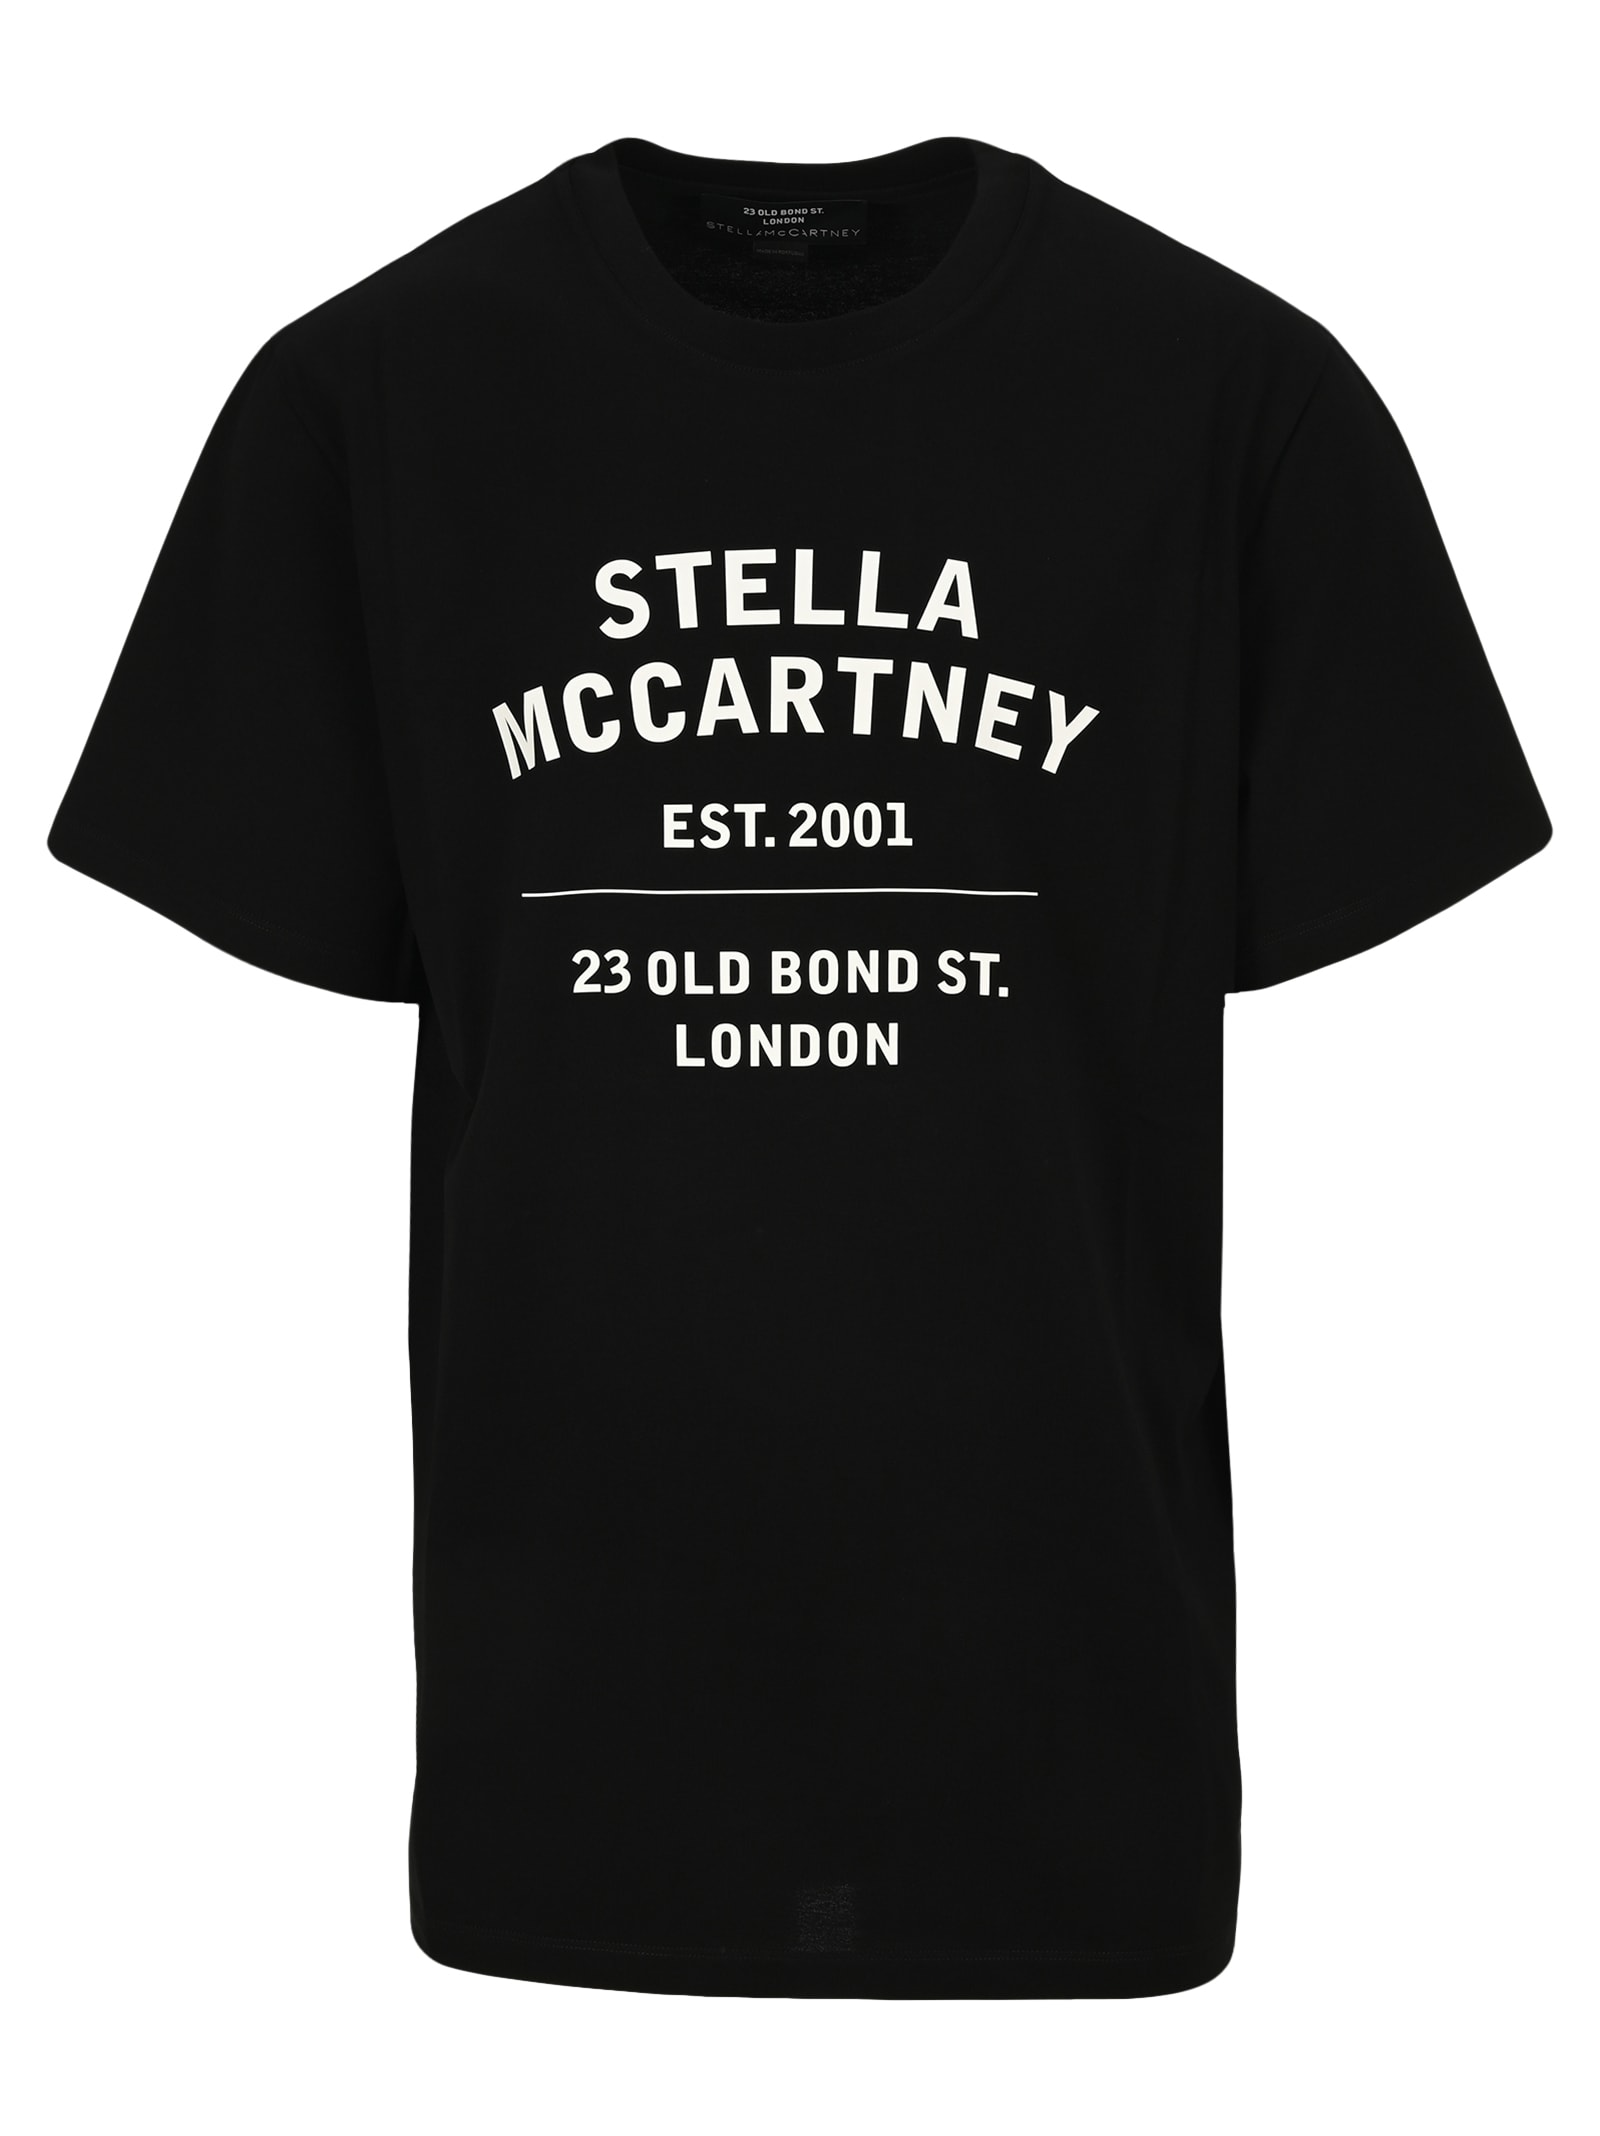 Stella Mccartney STELLA MCCARTNEY LOGO PRINT T-SHIRT